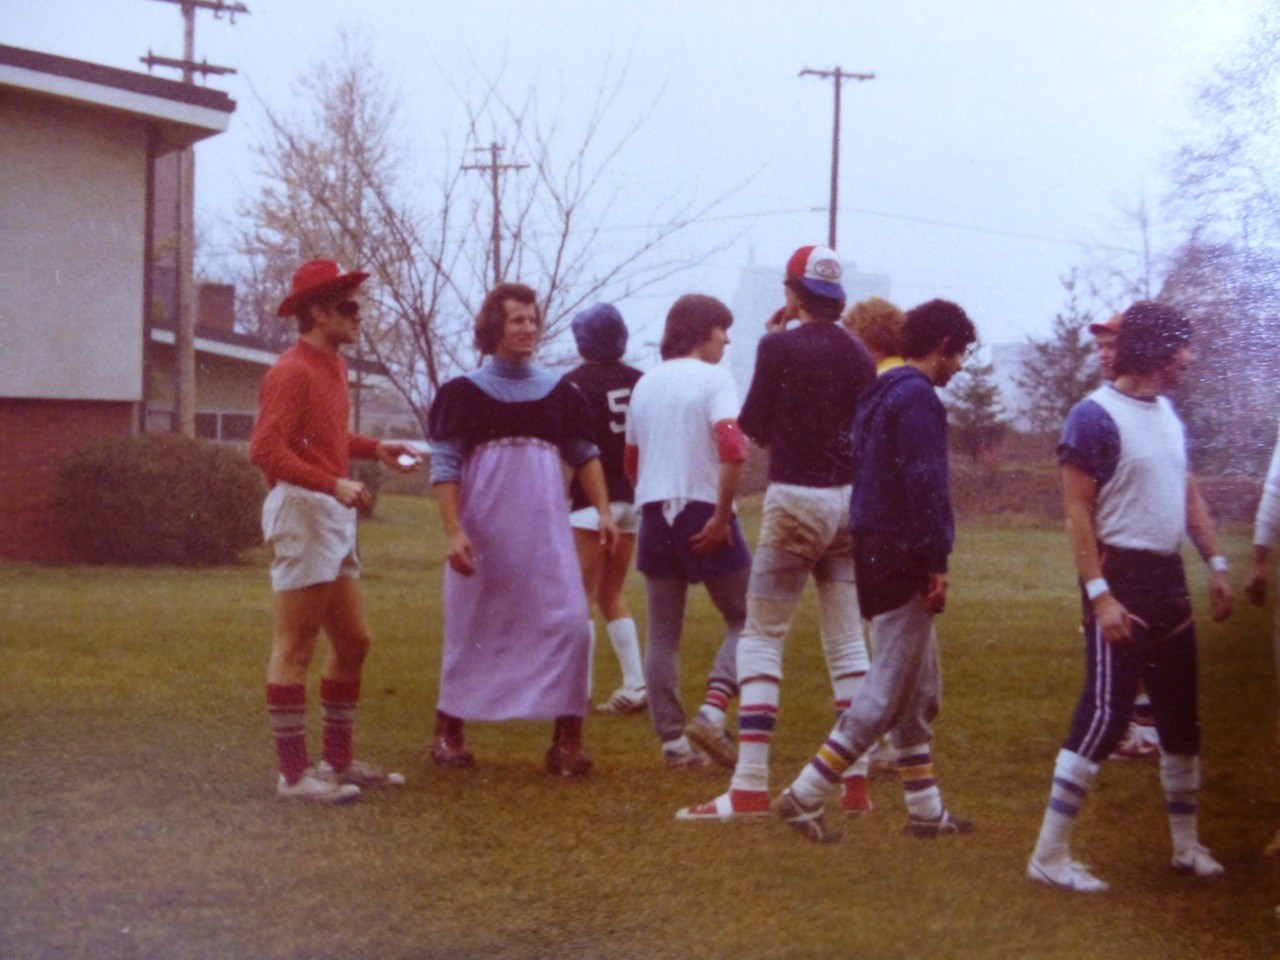 Willamette Years: Soccer in Costume